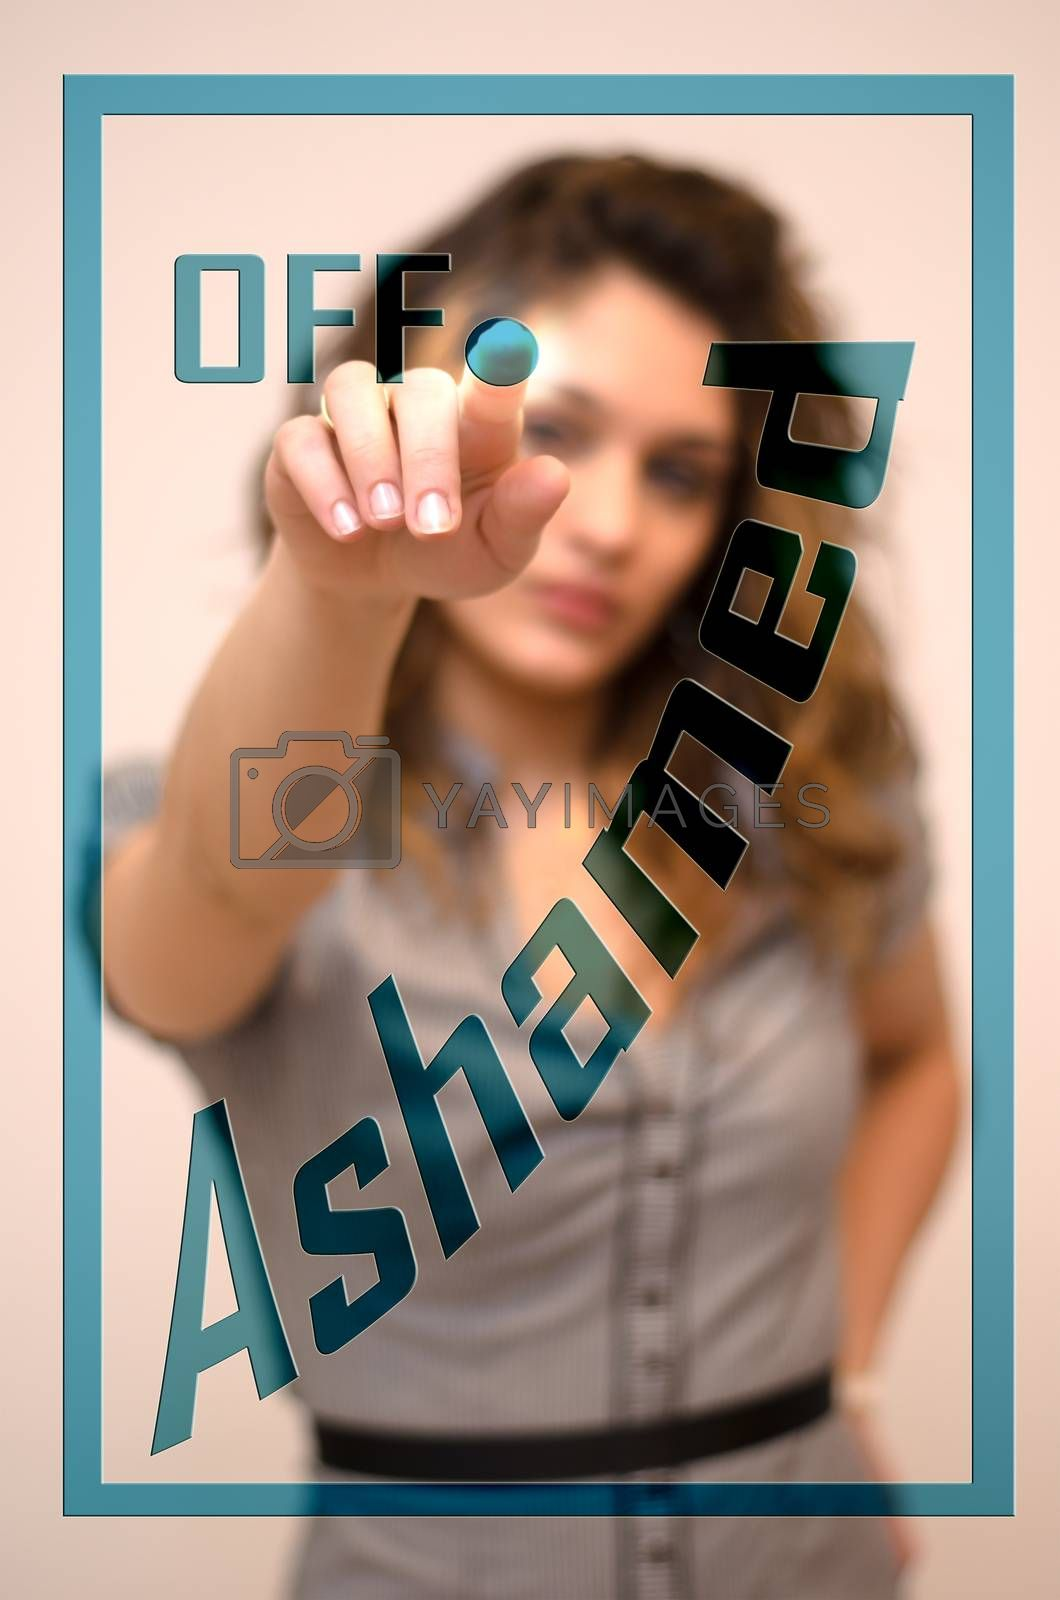 Royalty free image of woman switching off Ashamed on digital interace by vepar5